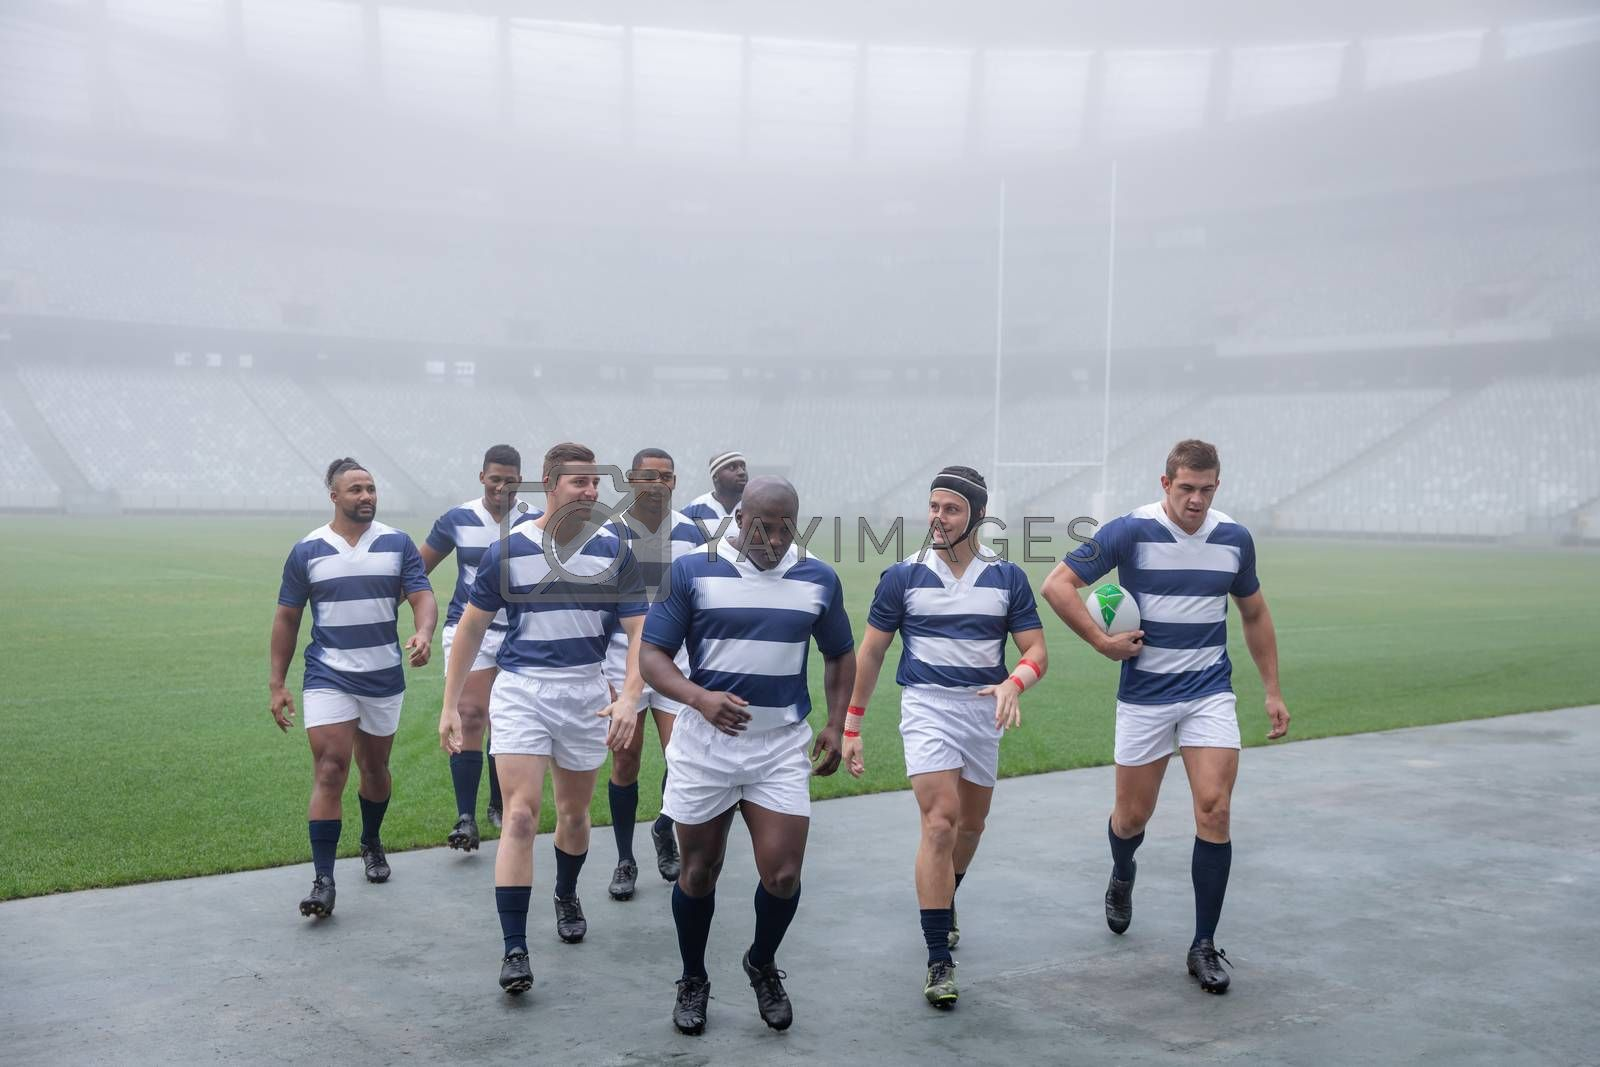 Front view of group of male rugby player walking together after match in stadium